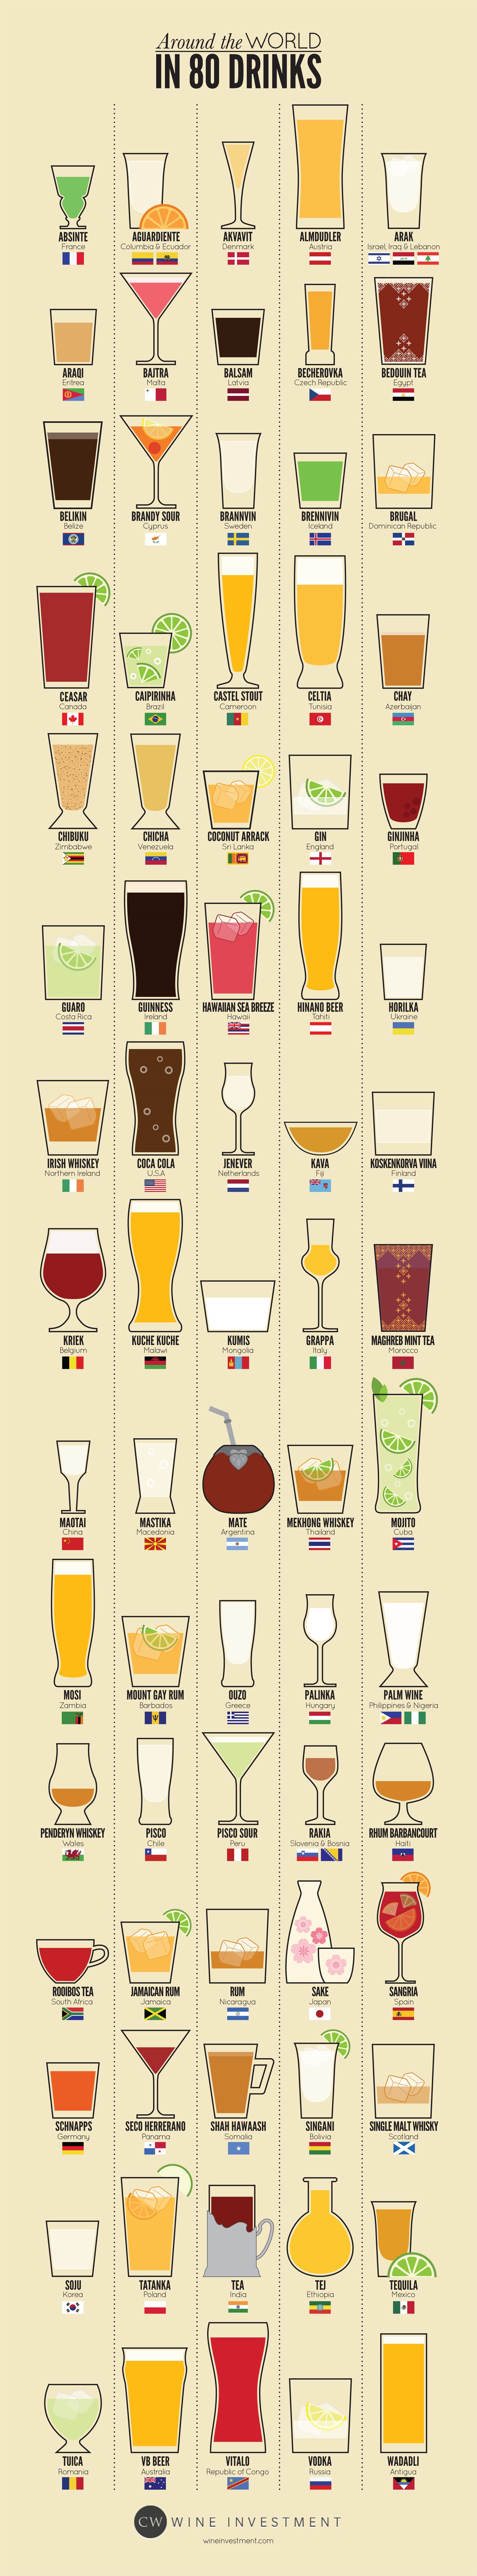 Around the World in 80 Drinks Infographic